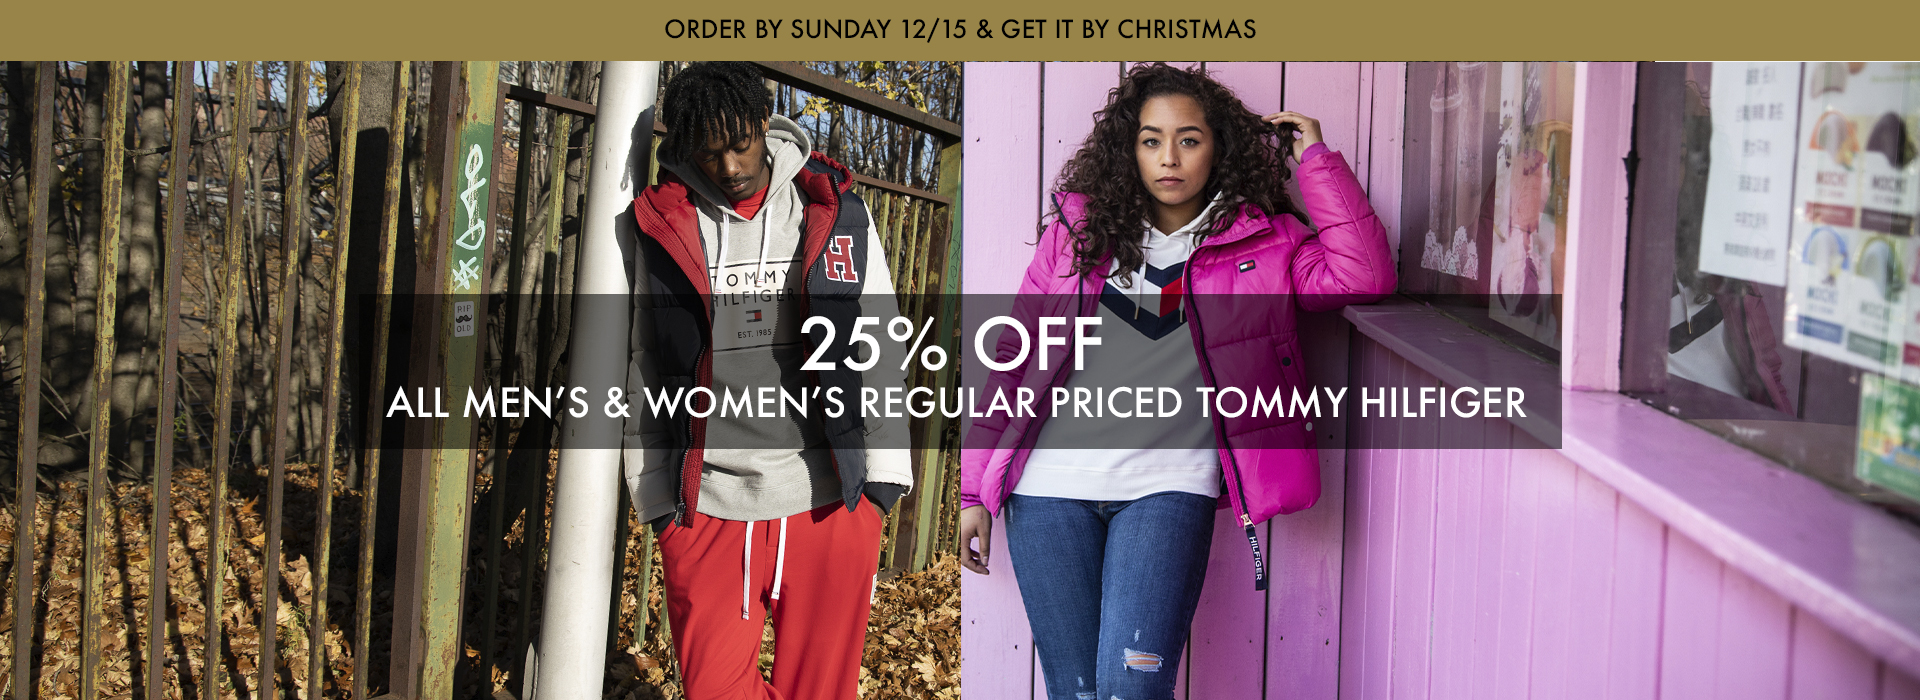 25% OFF REGULAR PRICED TOMMY